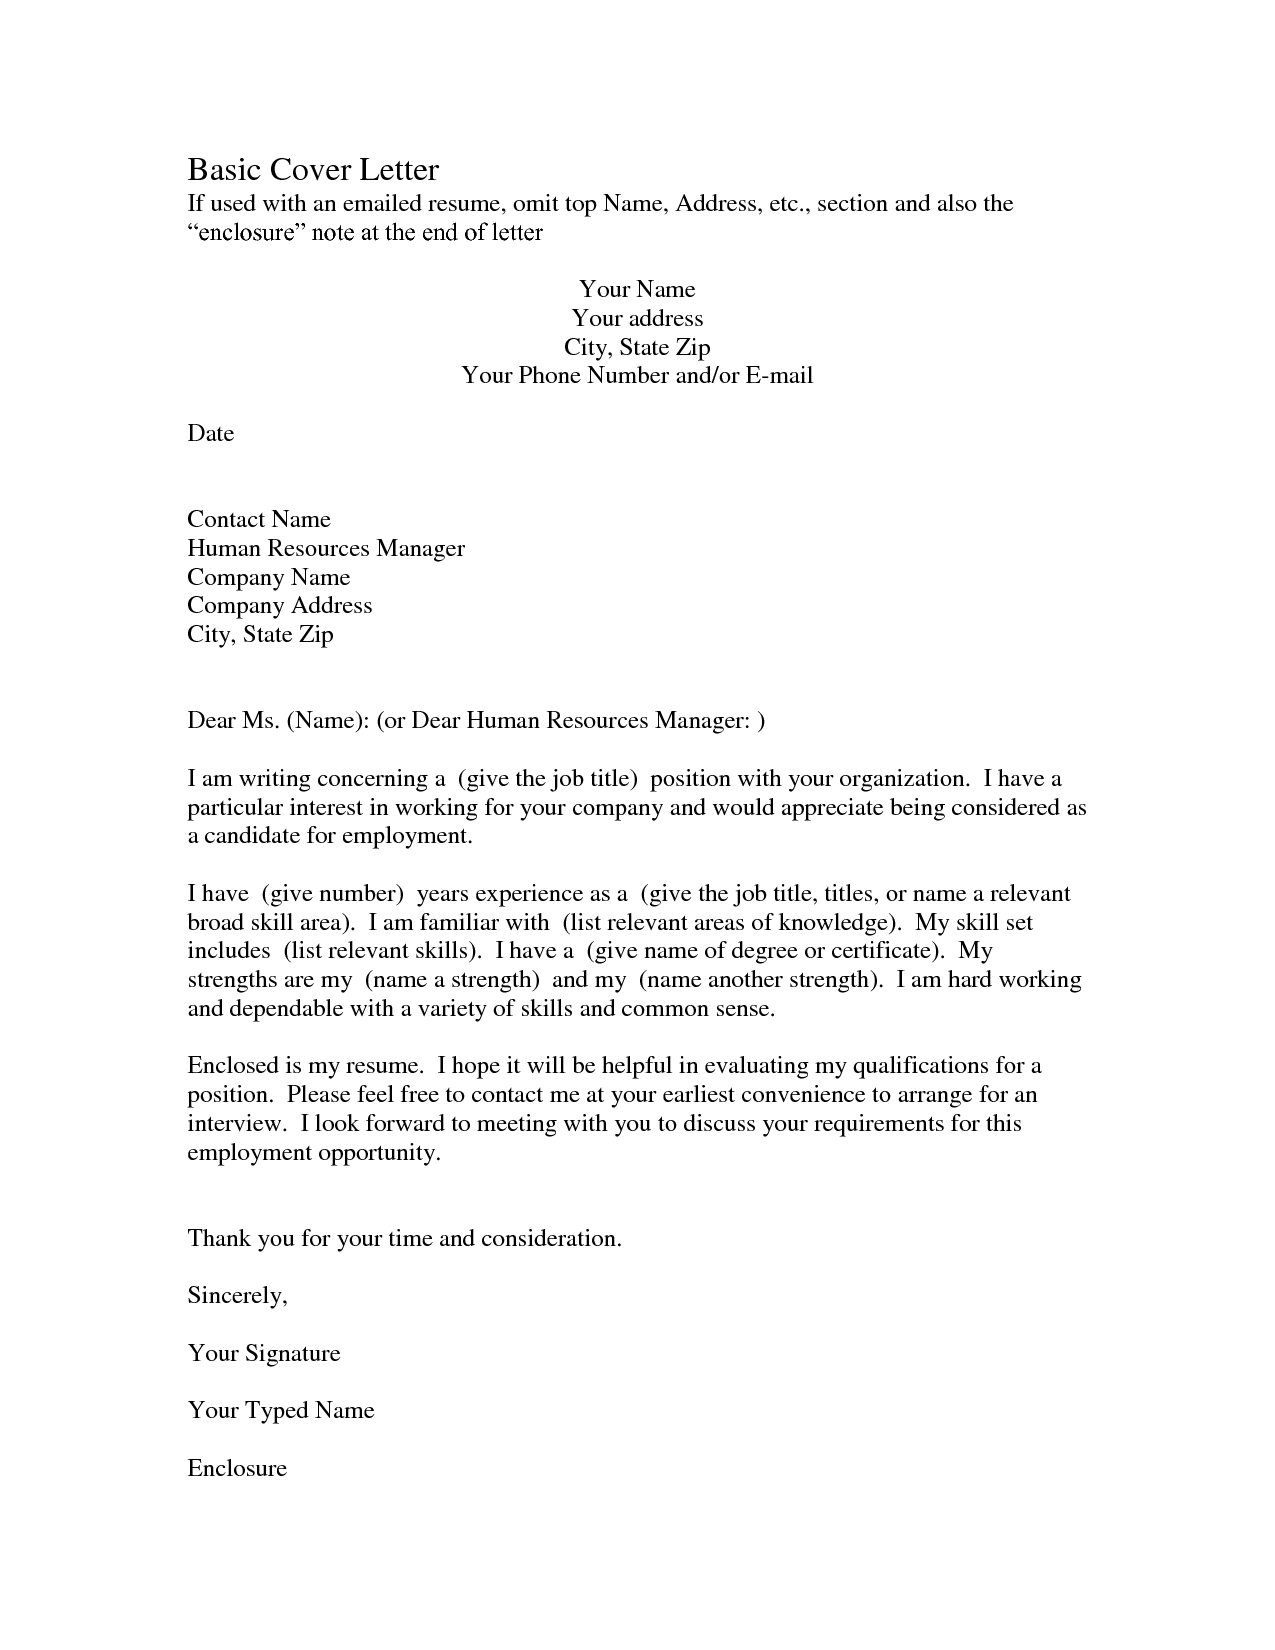 Covering Letter Example Simple Cover Letter ExampleSimple Cover ...